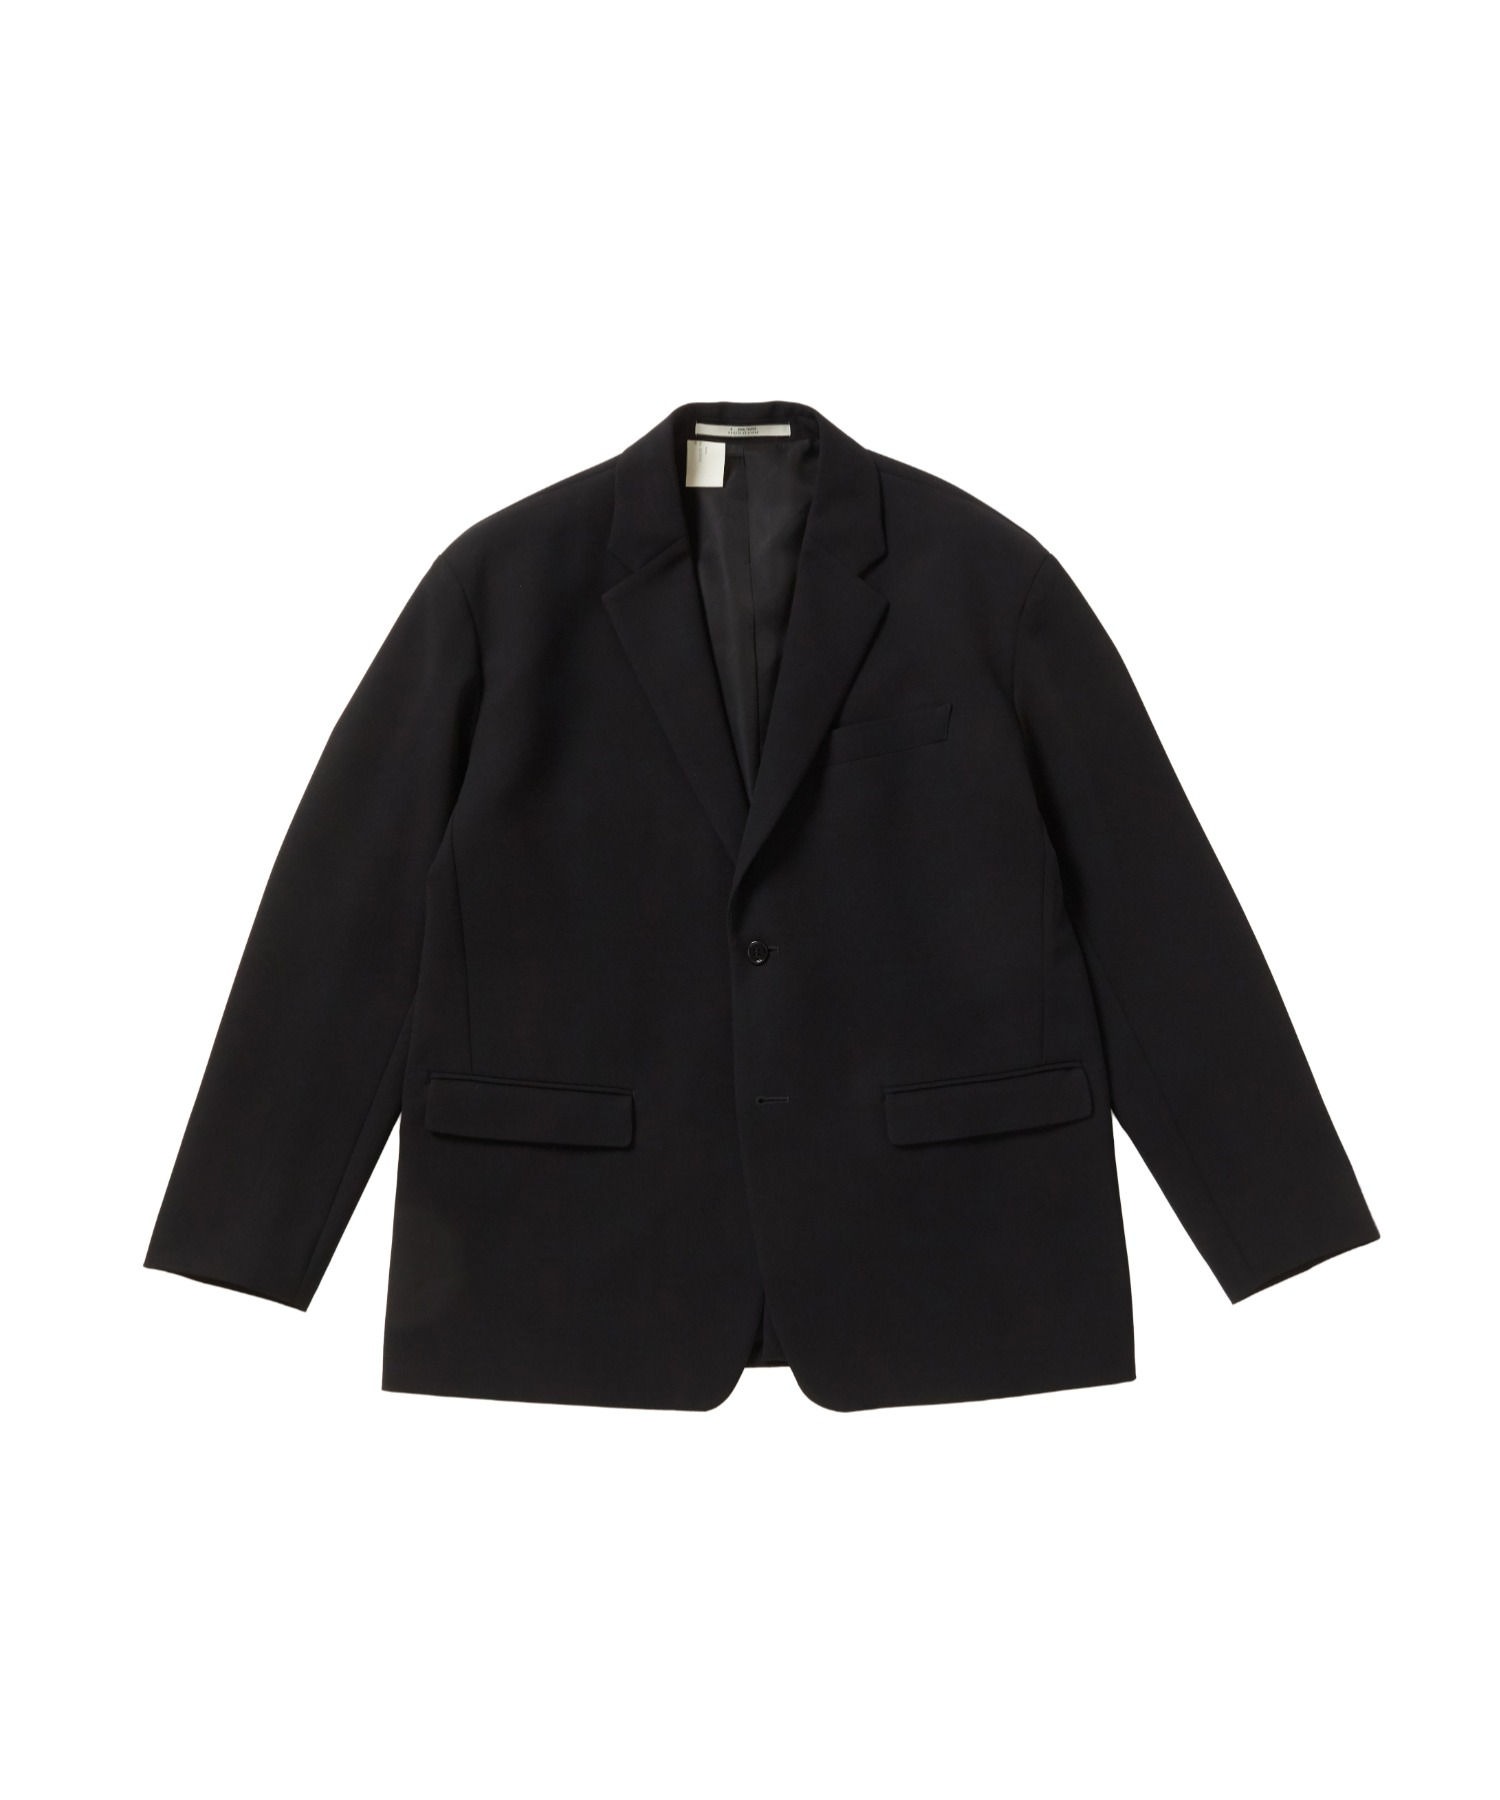 FALL2020 TAILORED JACKET